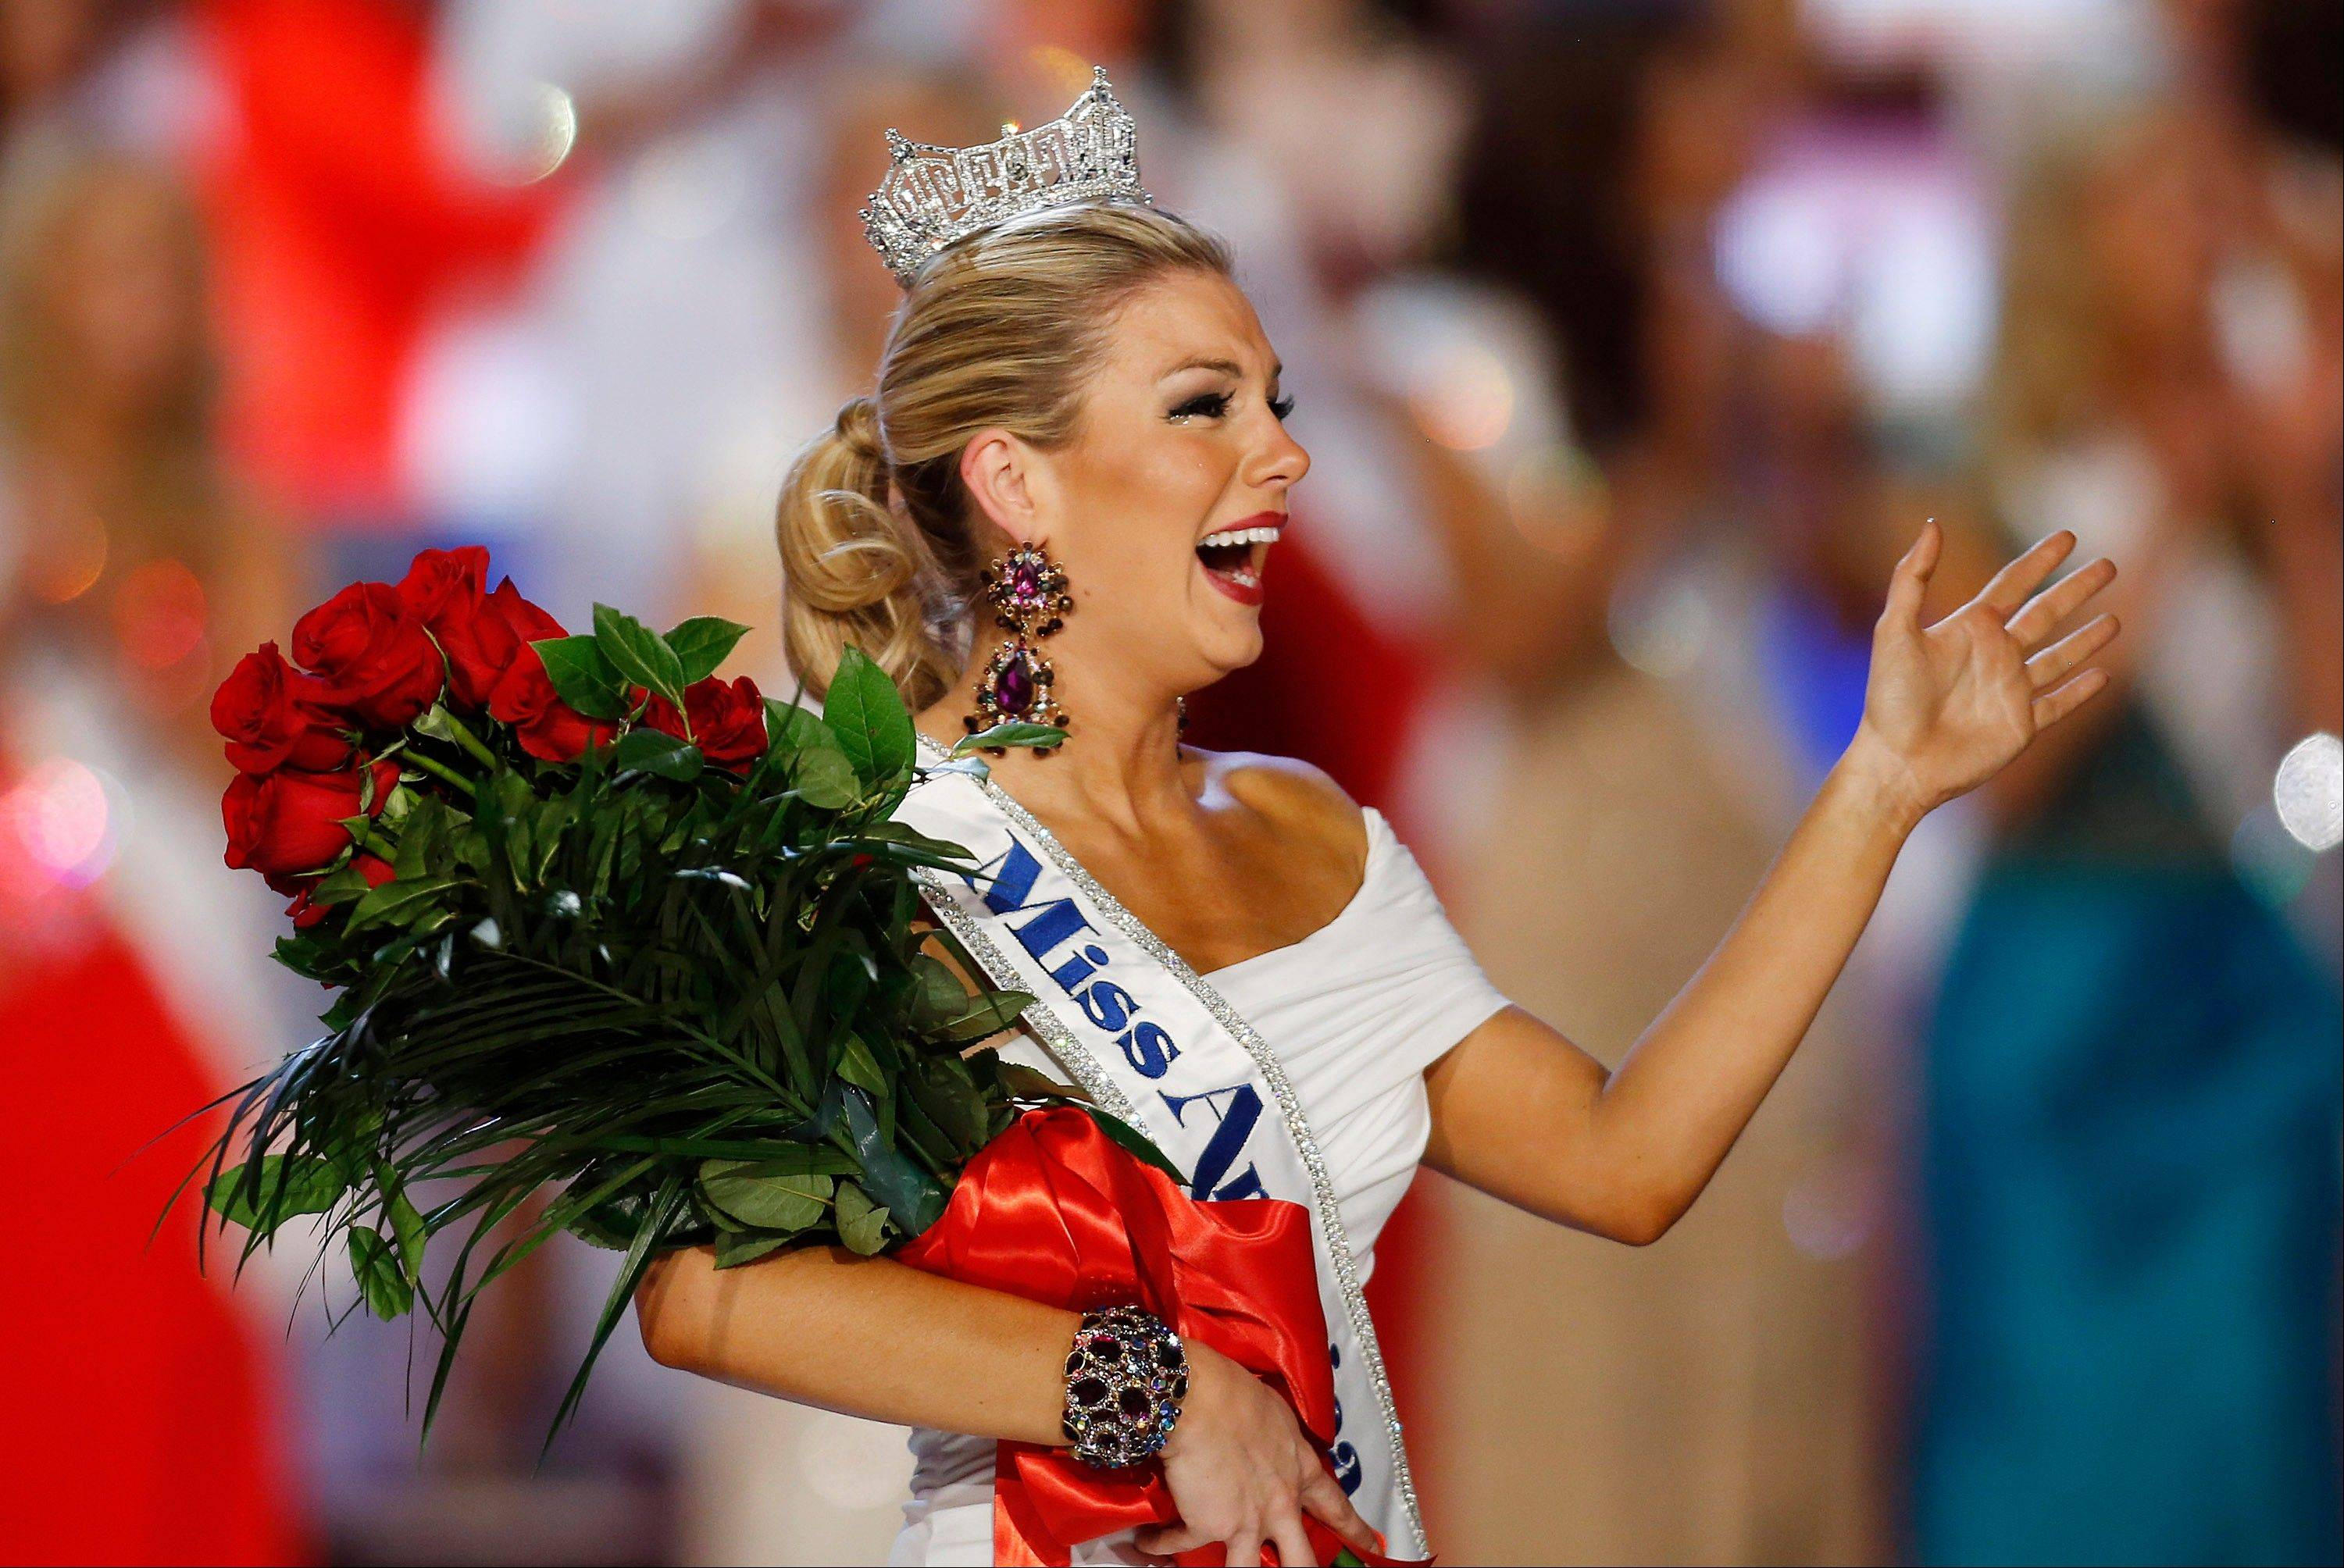 Miss New York Mallory Hagan waves after she was crowned Miss America 2013 on Saturday, Jan. 12, 2013, in Las Vegas.